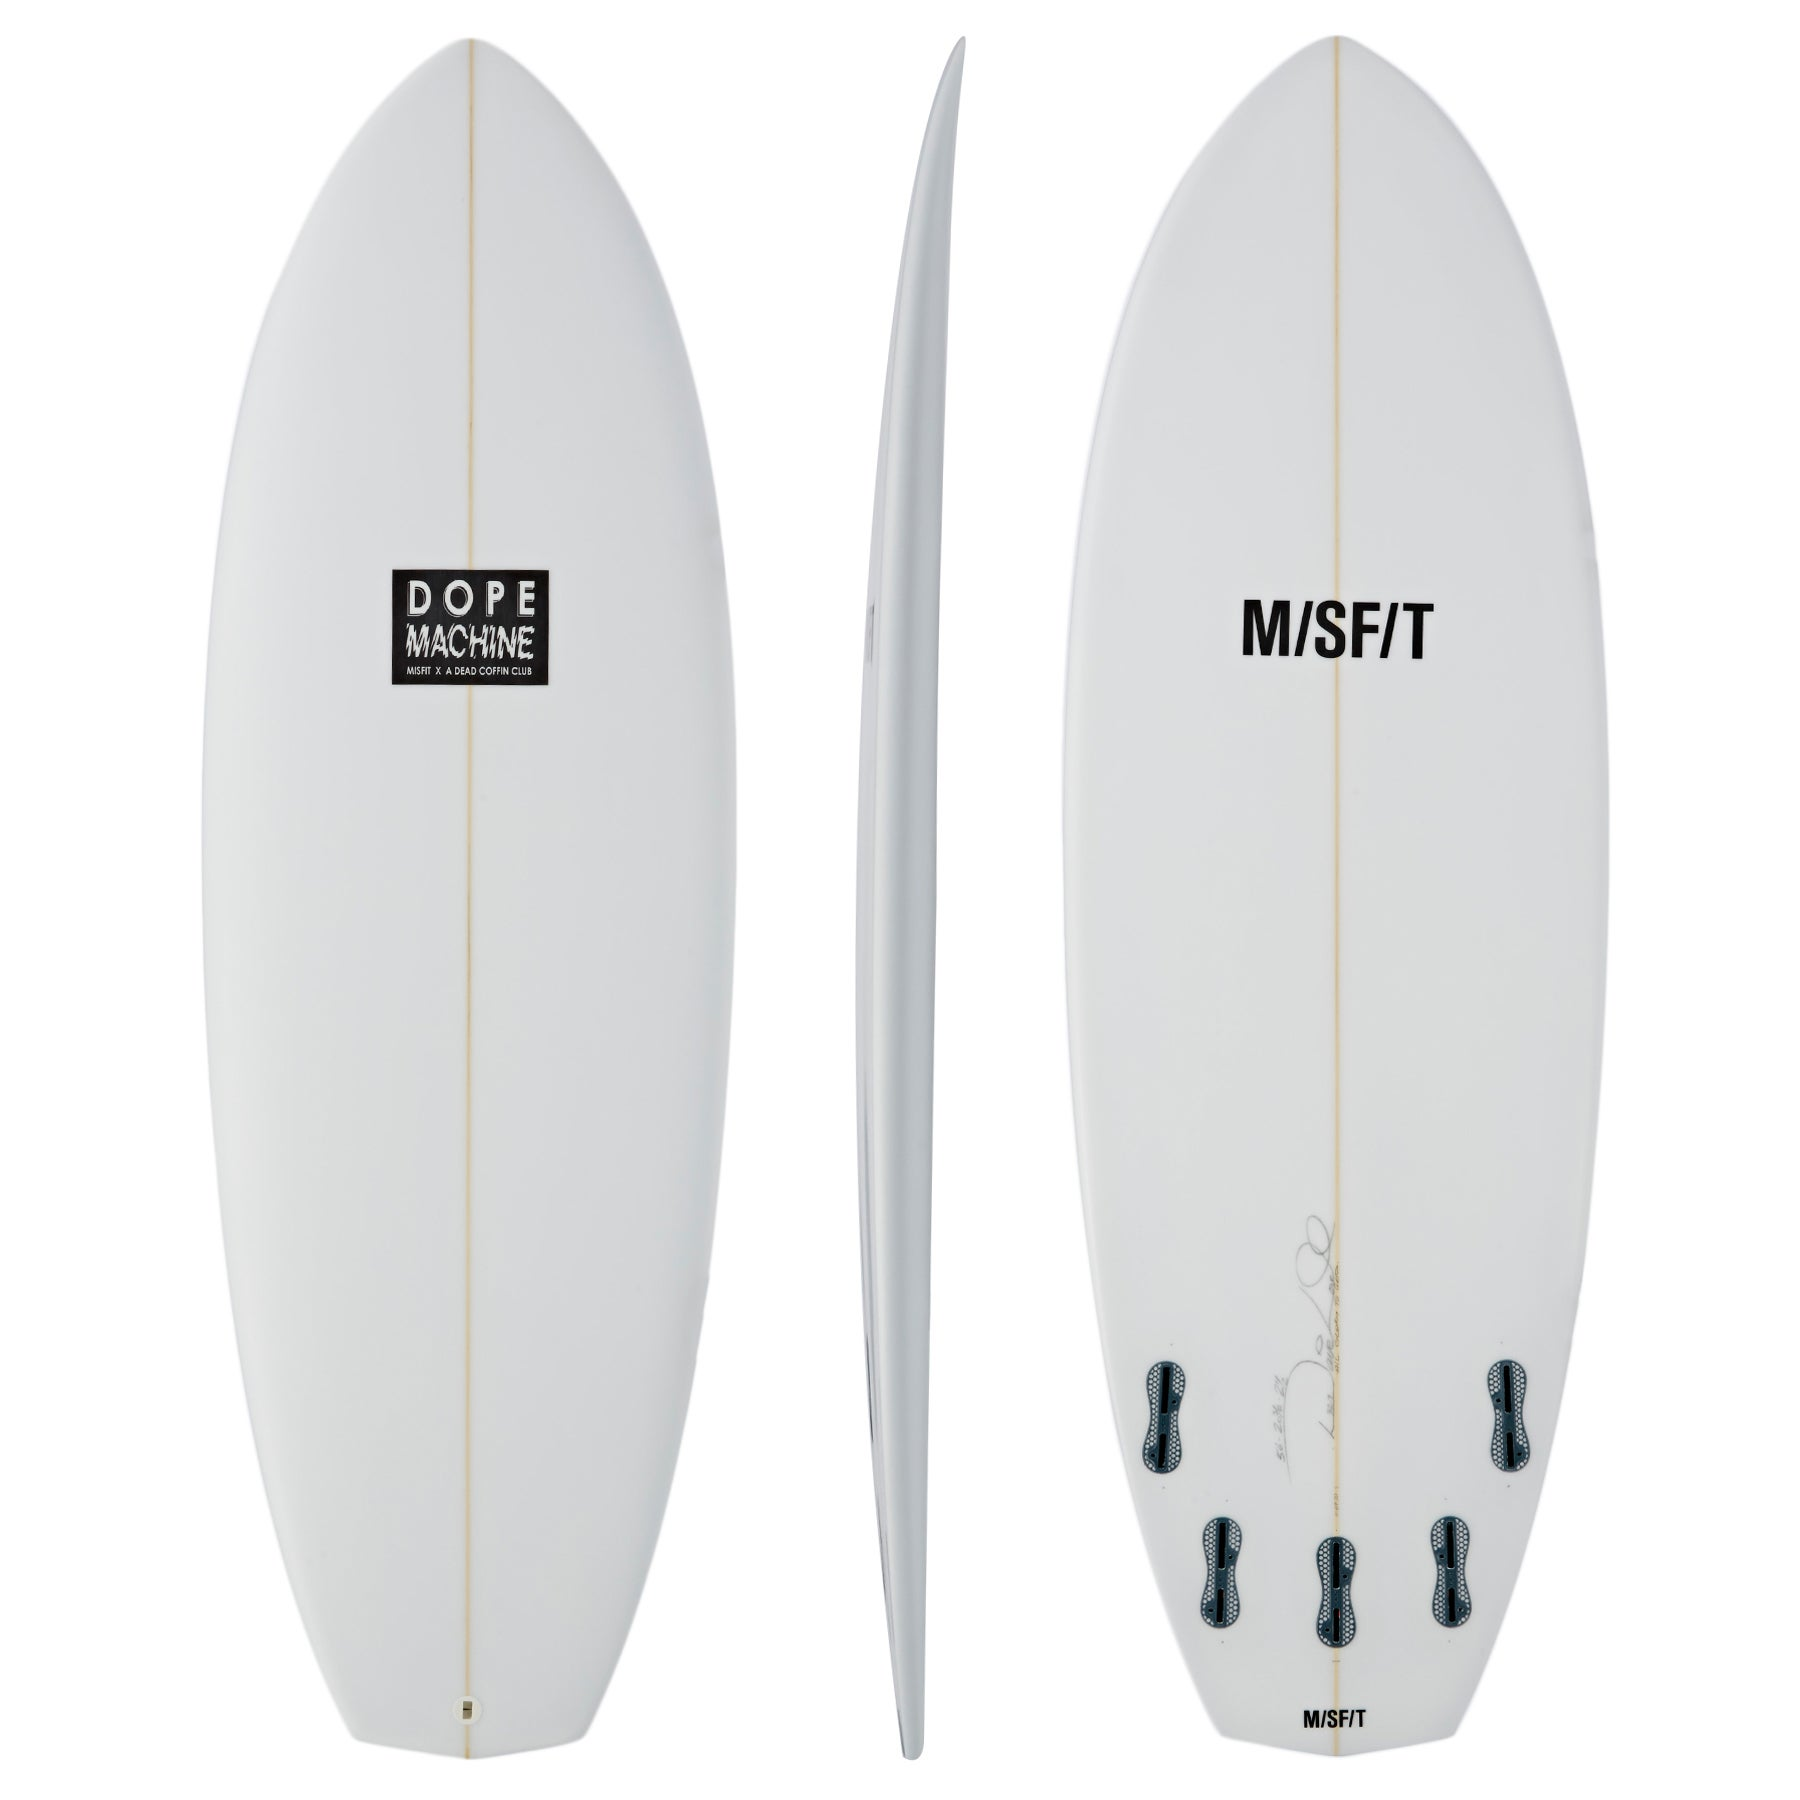 Surfboard Misfit Dope Machine FCS II 5 Fin - White